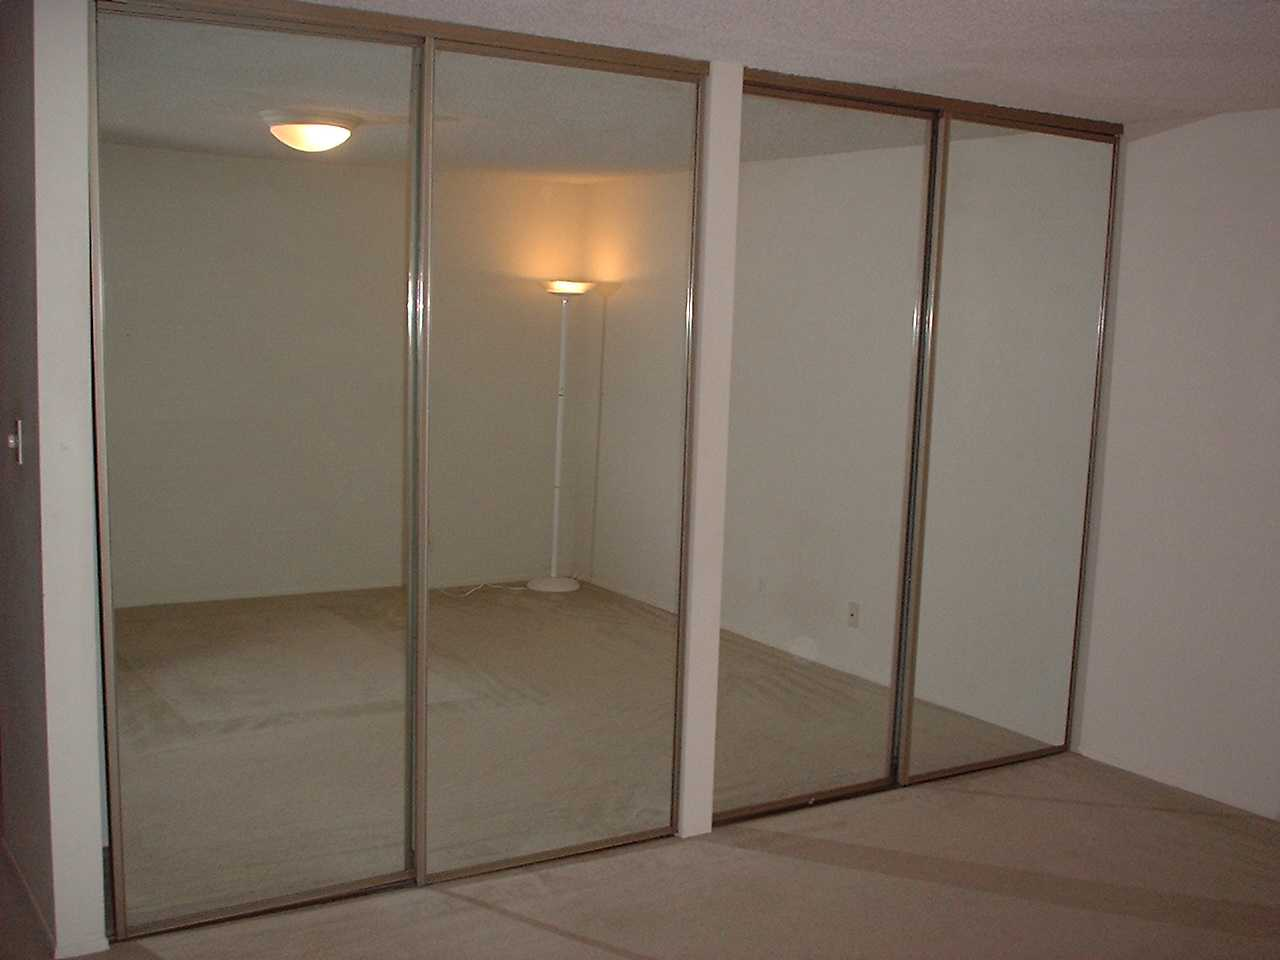 Large Acrylic Corner Shelf 300mm Approx 12 Free Trolley Token Material Sample Included Per Shipment  Clear